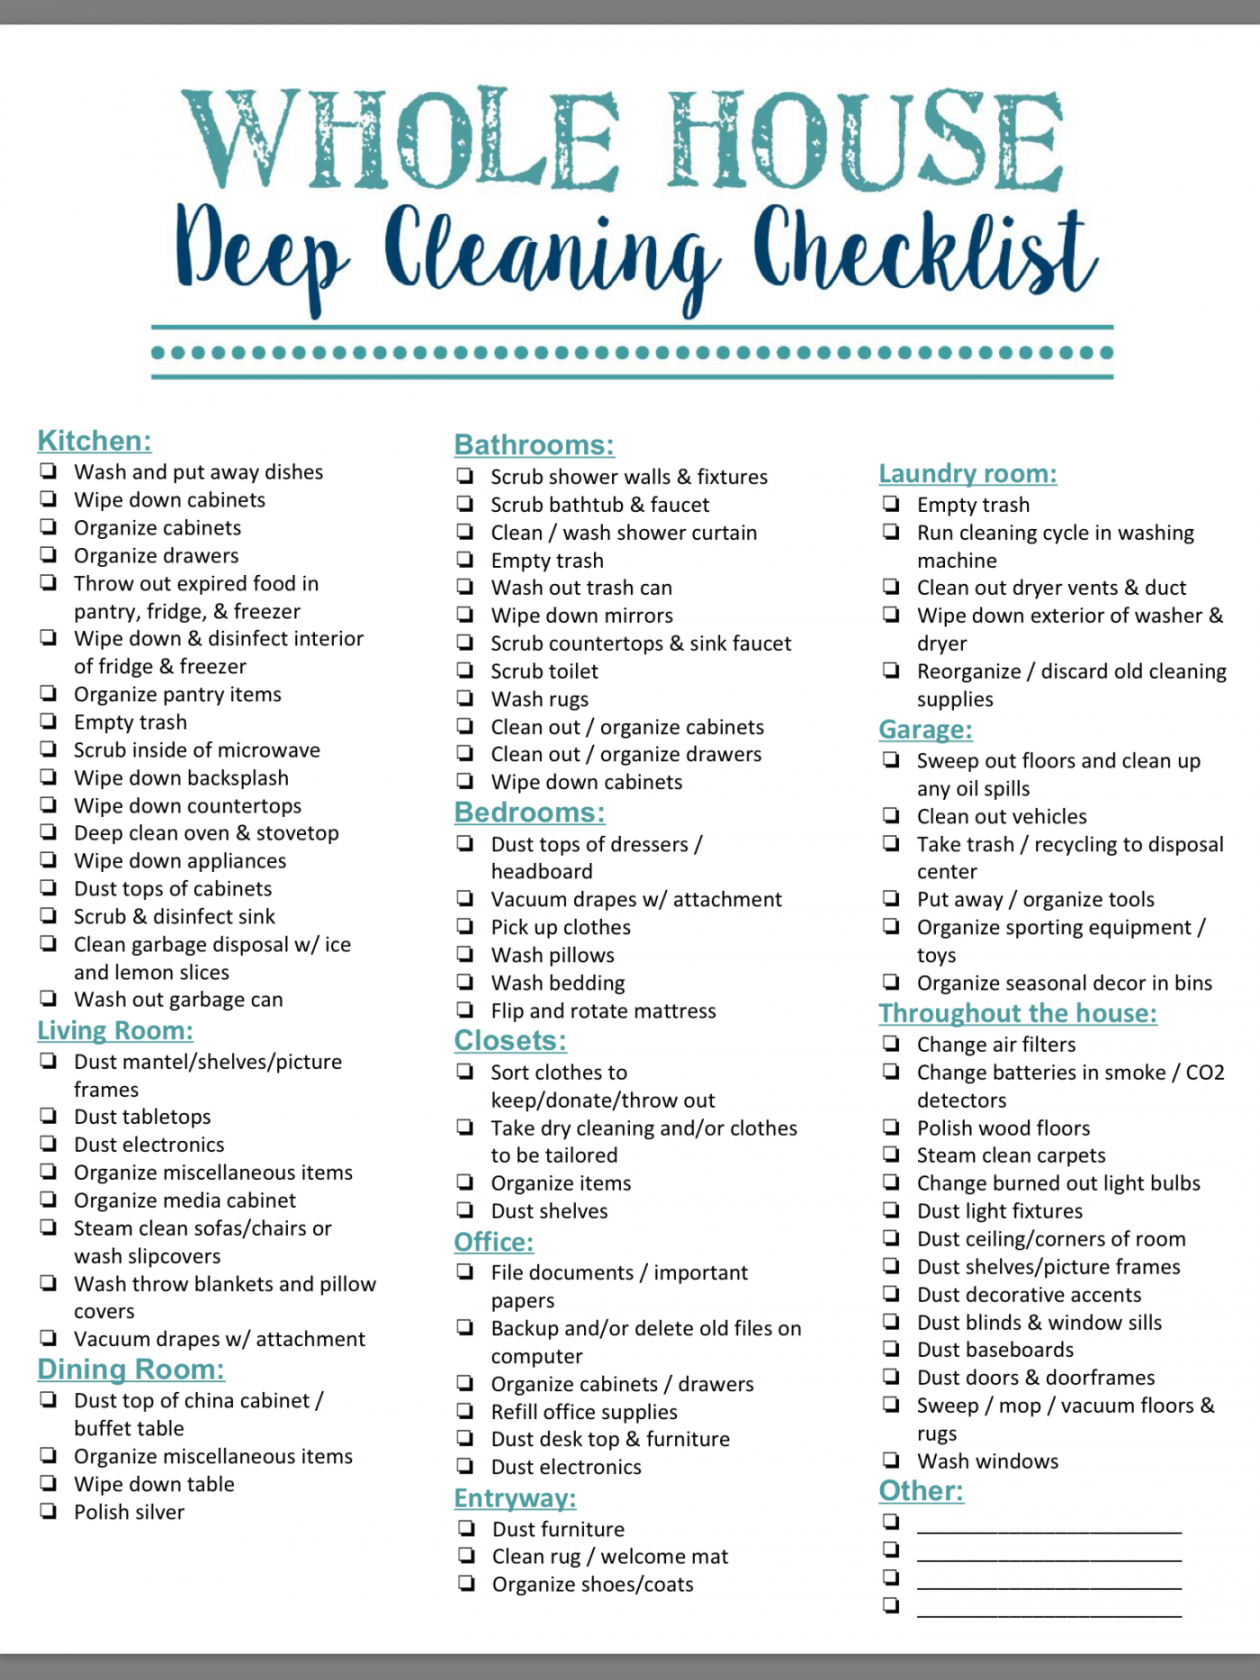 free 40 helpful house cleaning checklists for you  kittybabylove deep cleaning checklist template doc